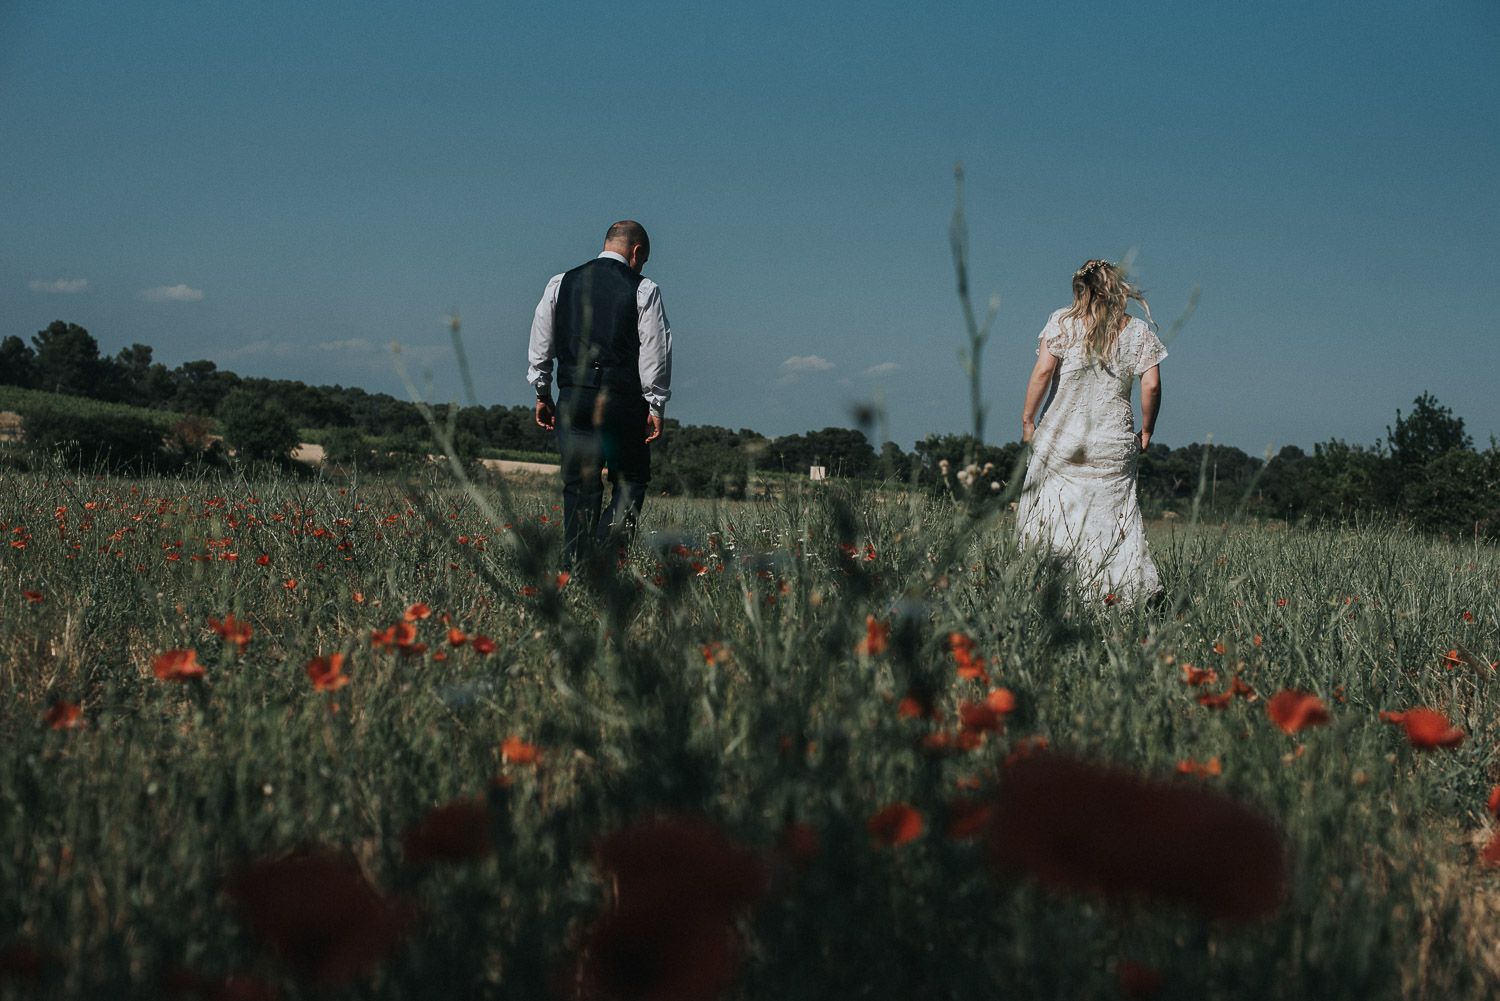 chateau_canet_carcassonne_wedding_katy_webb_photography_france_UK158